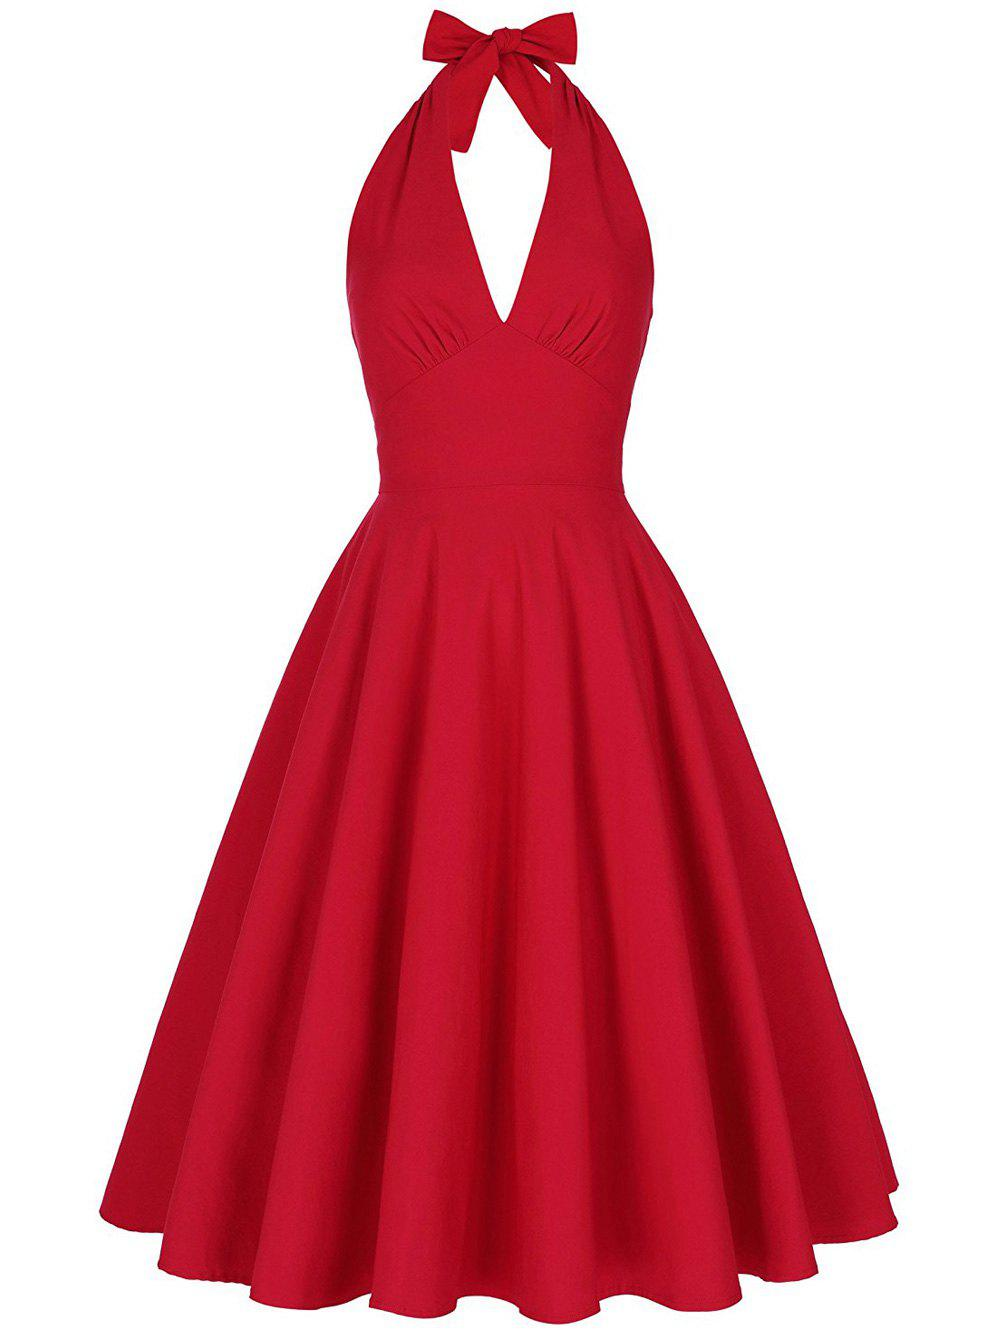 Halter Low Back Plunge Work Christmas Party DressWOMEN<br><br>Size: 2XL; Color: RED; Style: Vintage; Material: Cotton,Cotton Blend,Polyester; Silhouette: Ball Gown; Dresses Length: Knee-Length; Neckline: Halter; Sleeve Length: Sleeveless; Embellishment: Backless; Pattern Type: Solid; With Belt: No; Season: Fall,Spring,Summer; Weight: 0.4150kg; Package Contents: 1 x Dress;